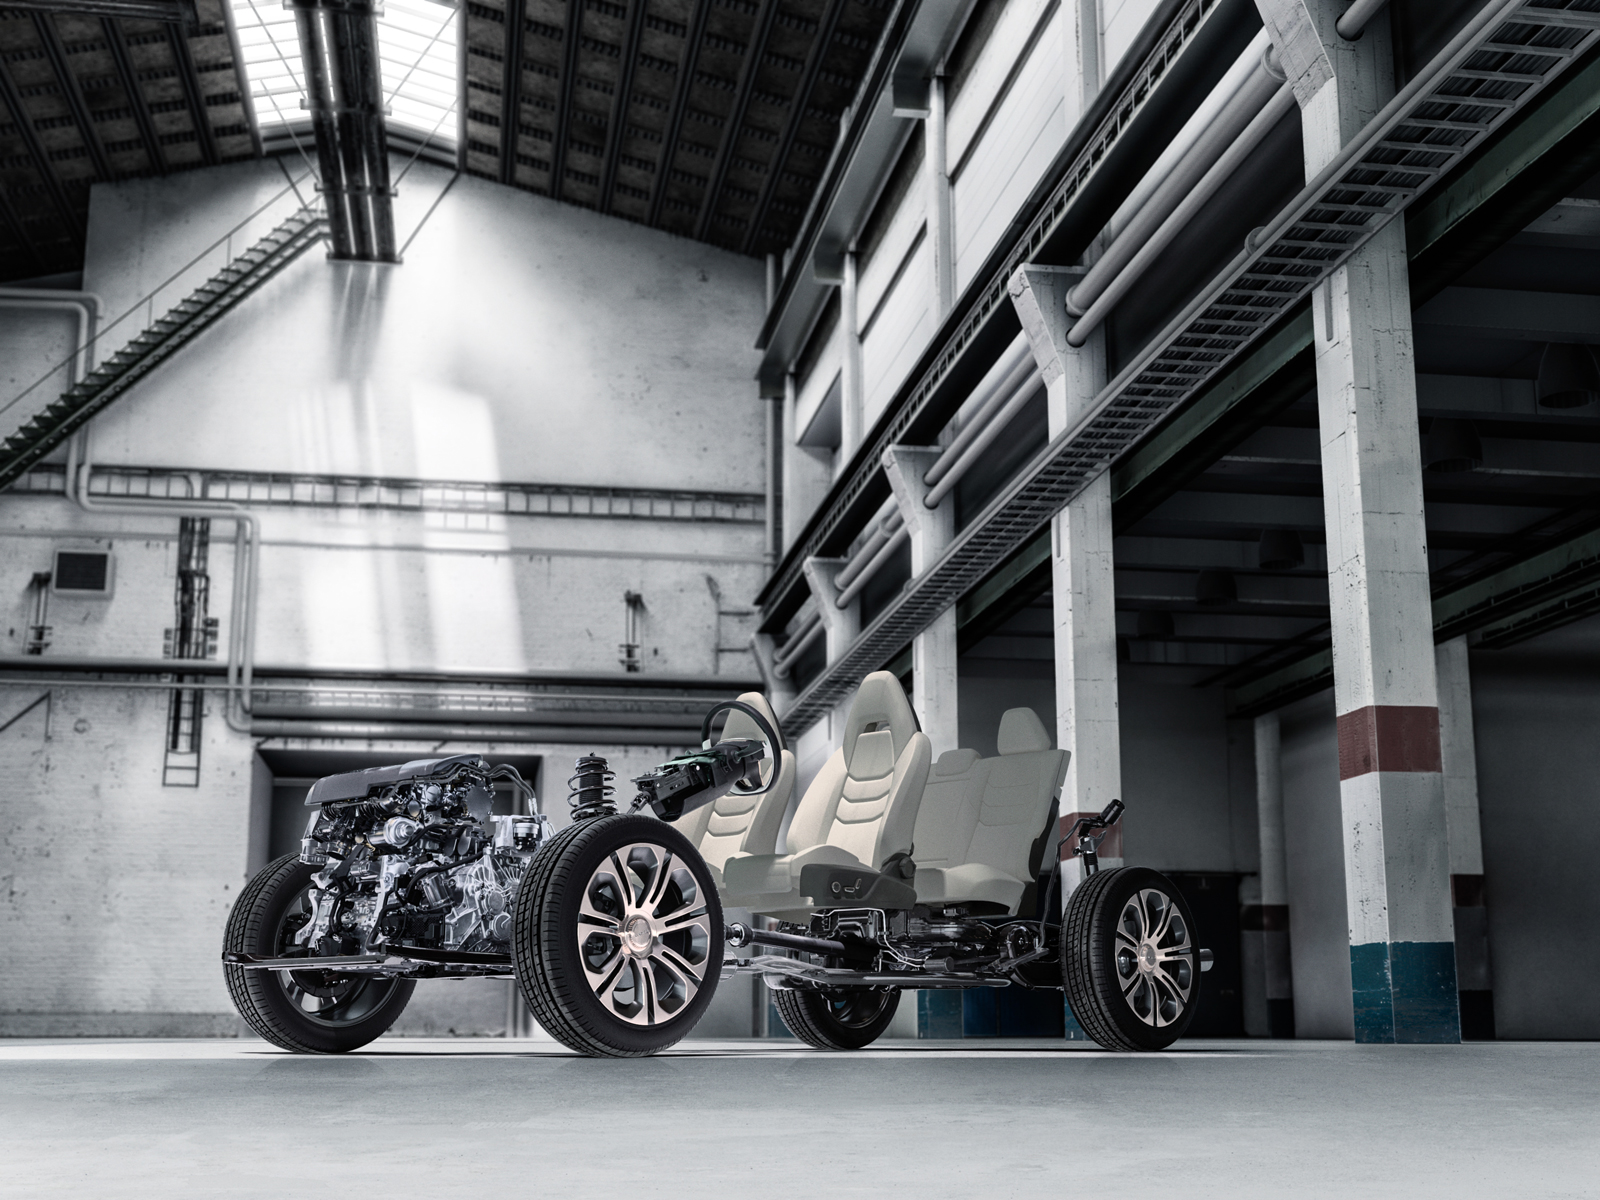 LYNK & CO, The Innovative Swedish Car Brand Looking To Change An Industry 11